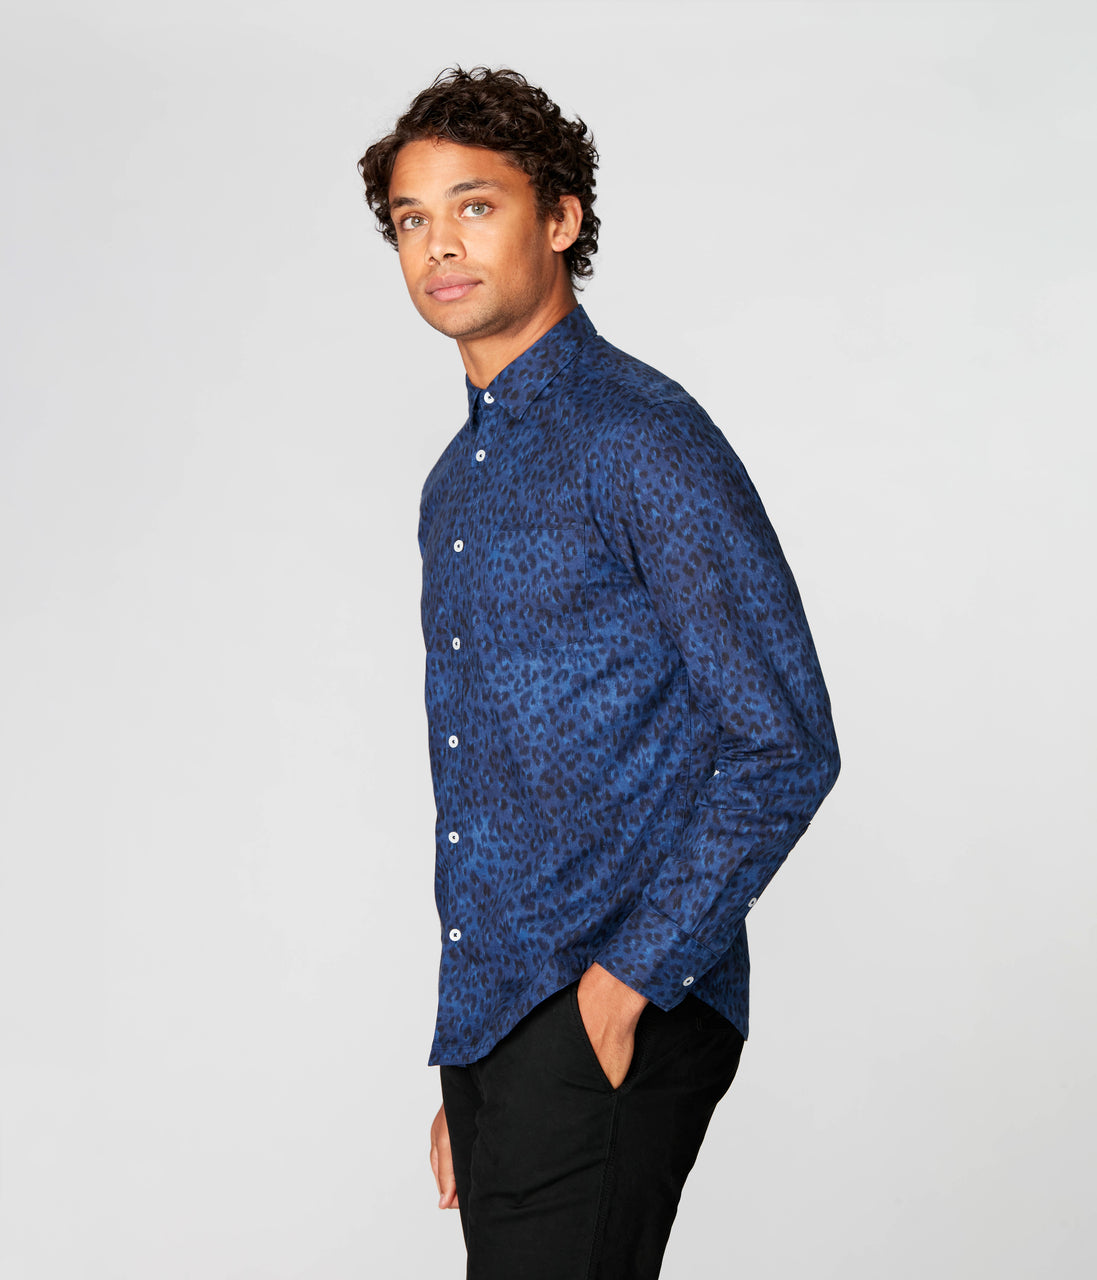 On-Point Print Shirt - Indigo Ombre Animale - Good Man Brand - On-Point Print Shirt - Indigo Ombre Animale